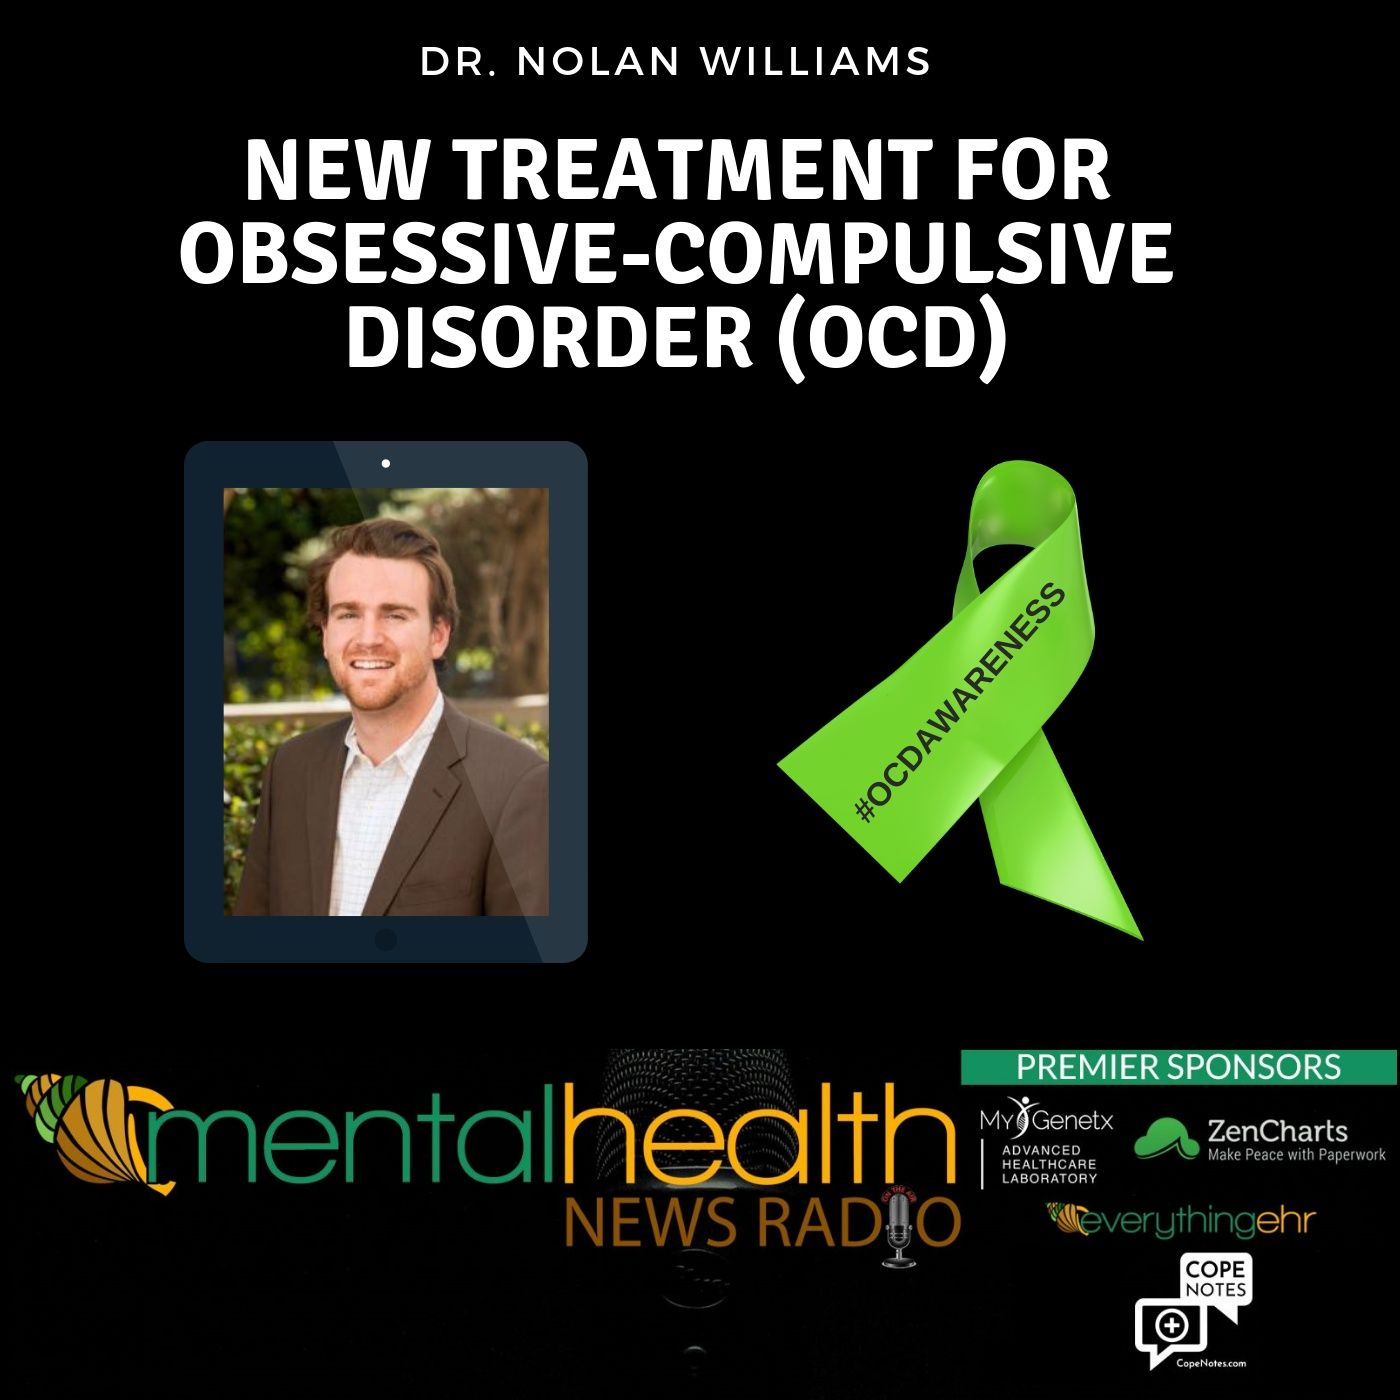 Mental Health News Radio - New Treatment for Obsessive-Compulsive Disorder with Dr. Nolan Williams